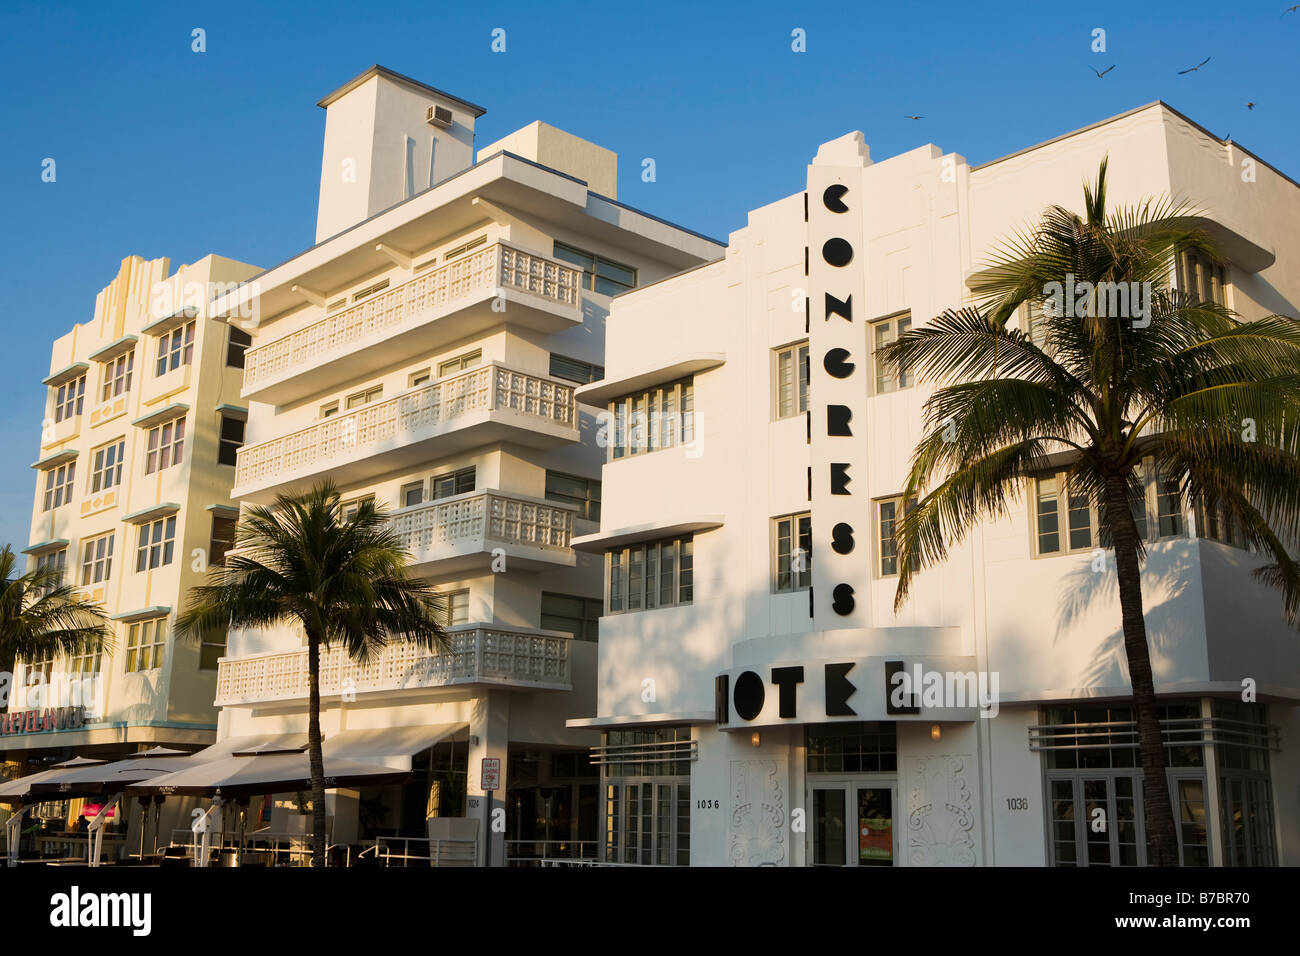 A Boutique Hotel The Congress Hotel A Boutique Hotel In The Art Deco Historic